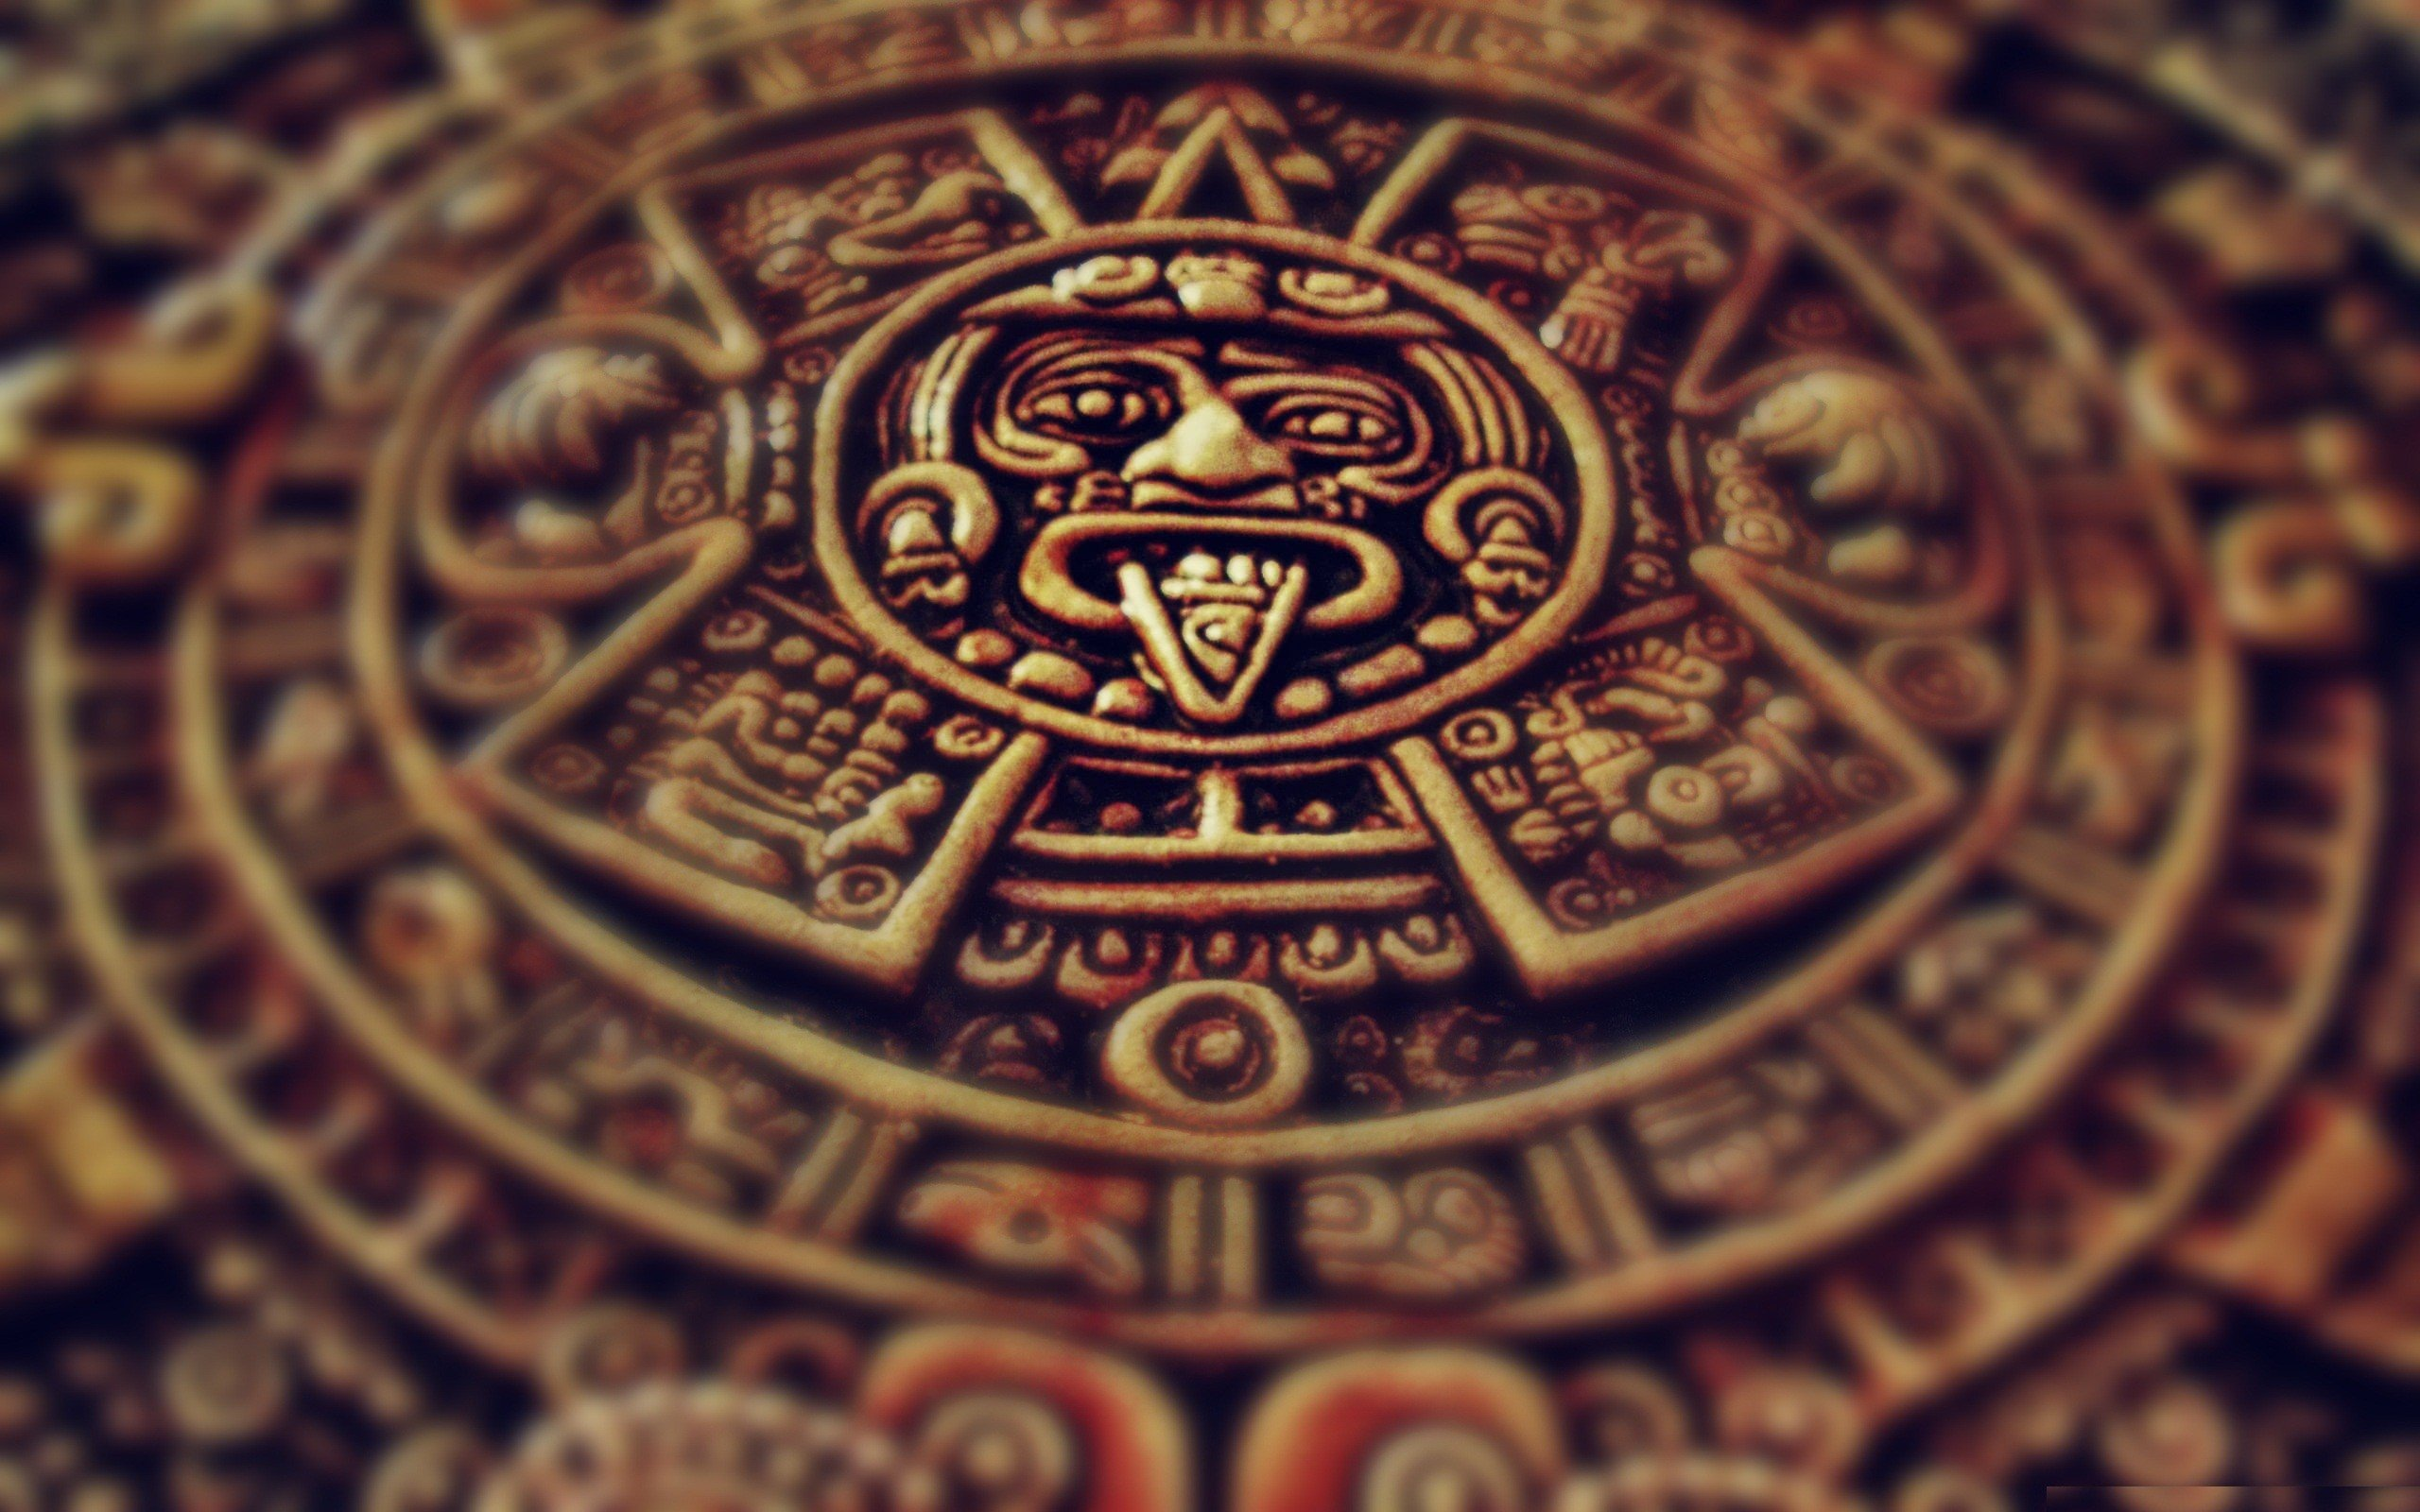 Clocks Mexico Sculptures Archeology Aztec Wallpaper